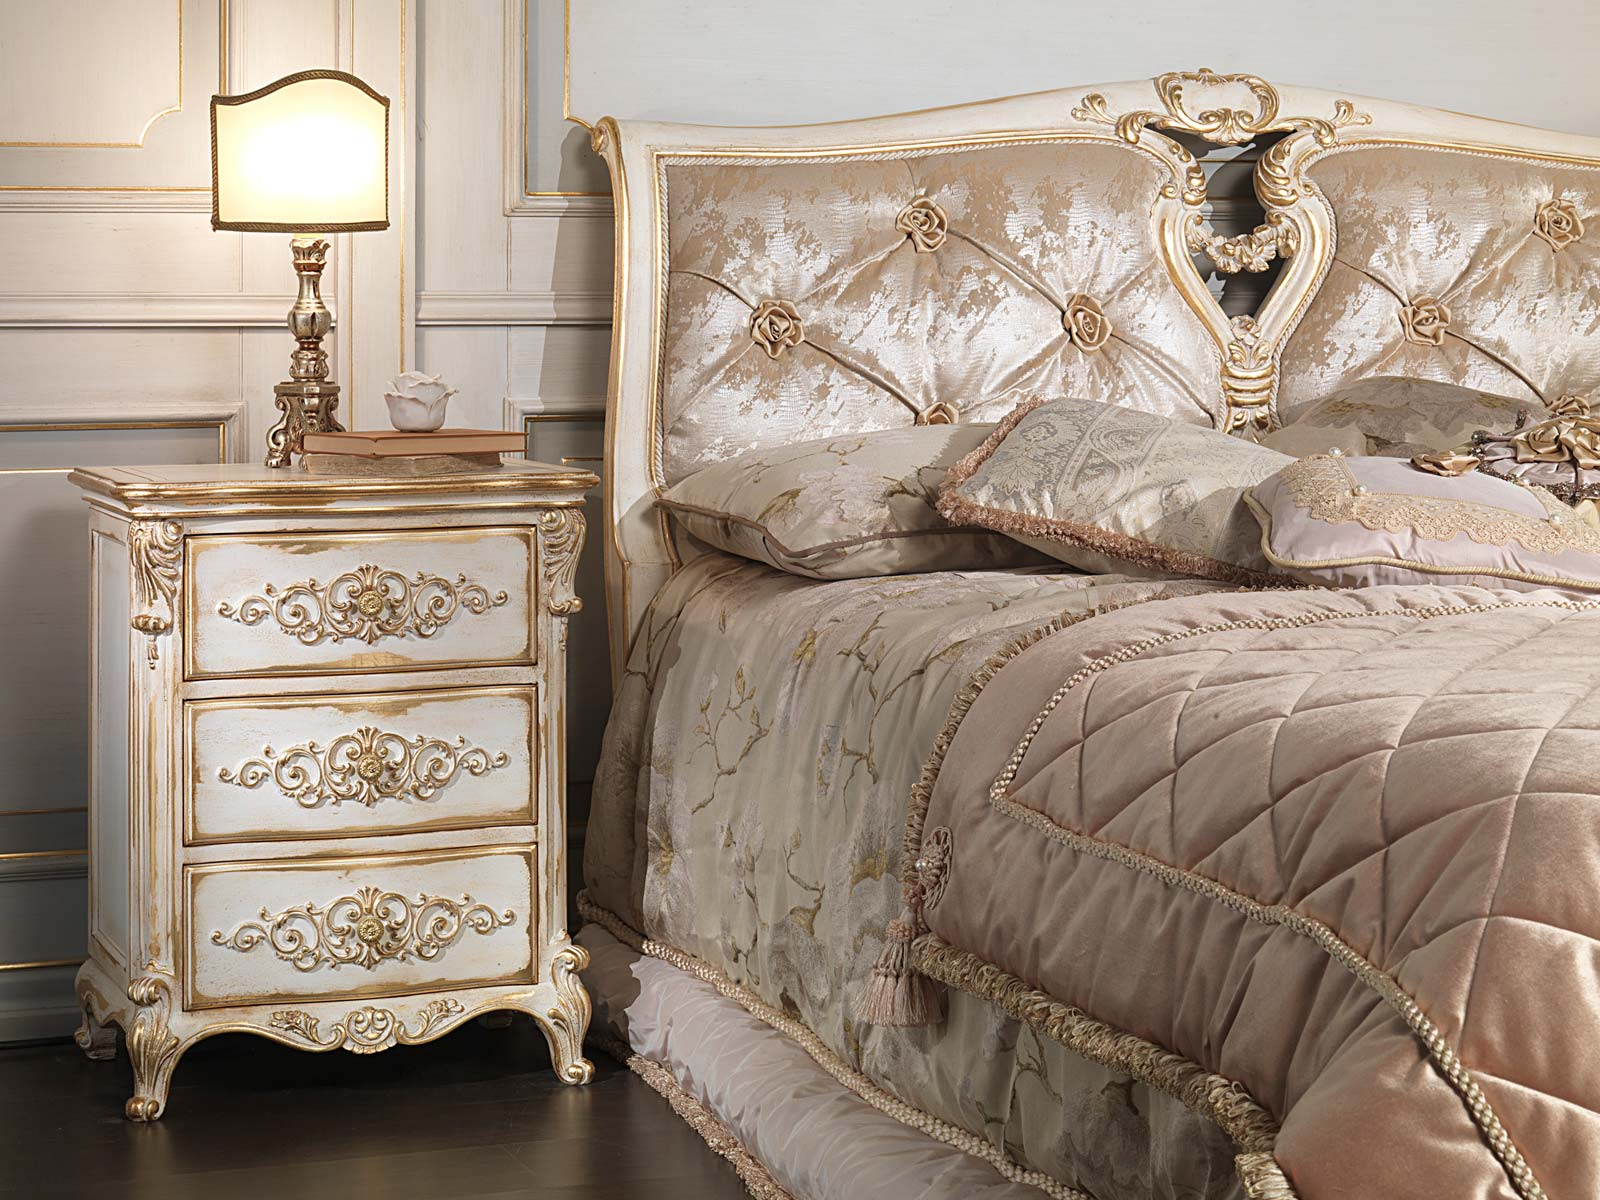 Classic louis xvi bedroom capitonnè bed with roses and